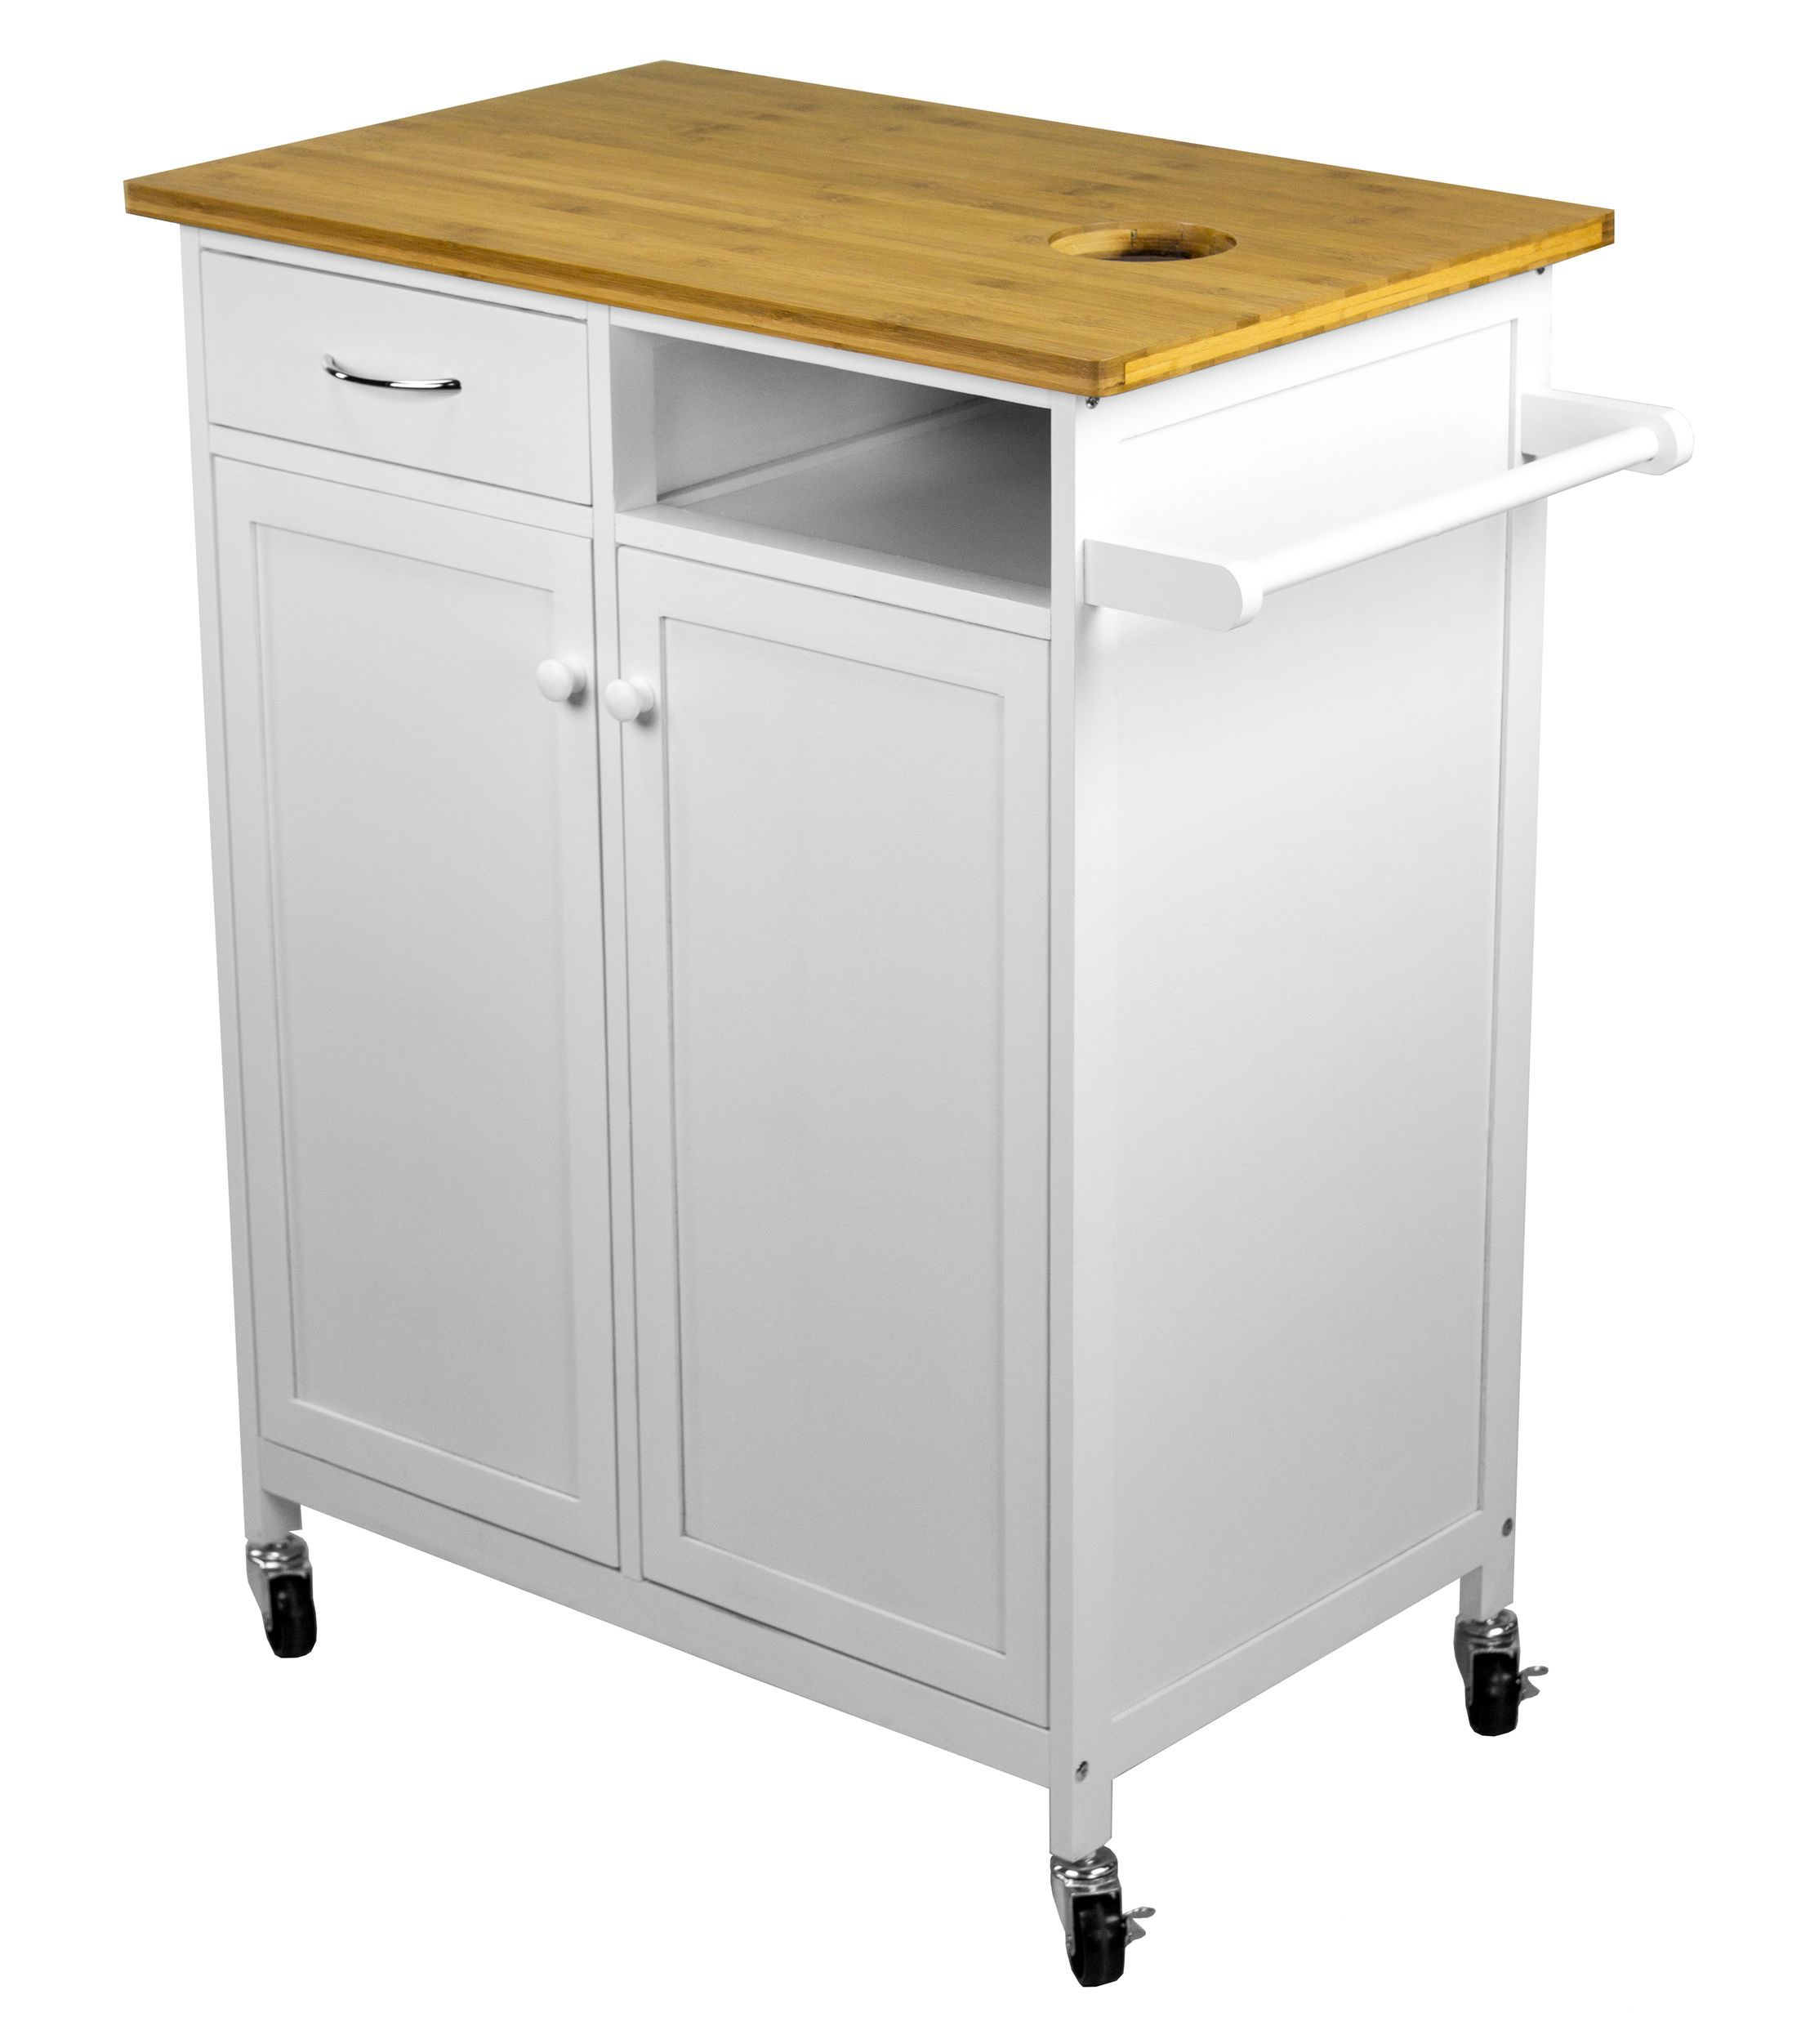 Nordic Sunrise Kitchen Cart with Butcher Block Top Dream Kitchen